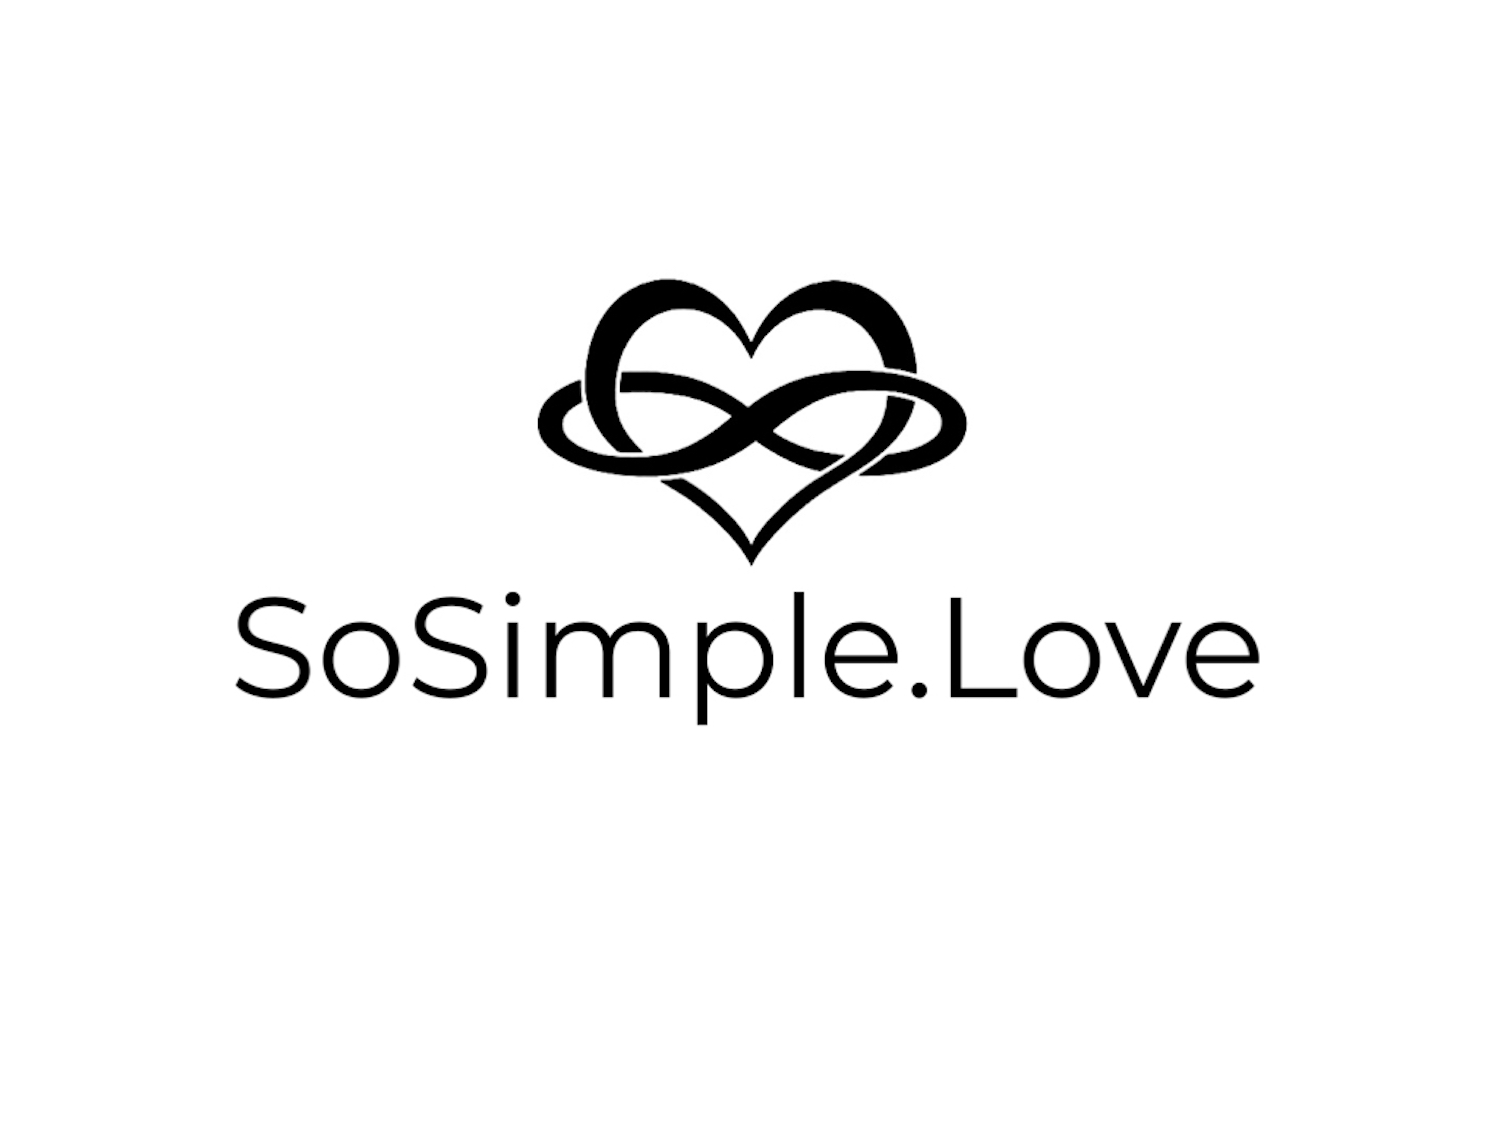 SoSimple.Love